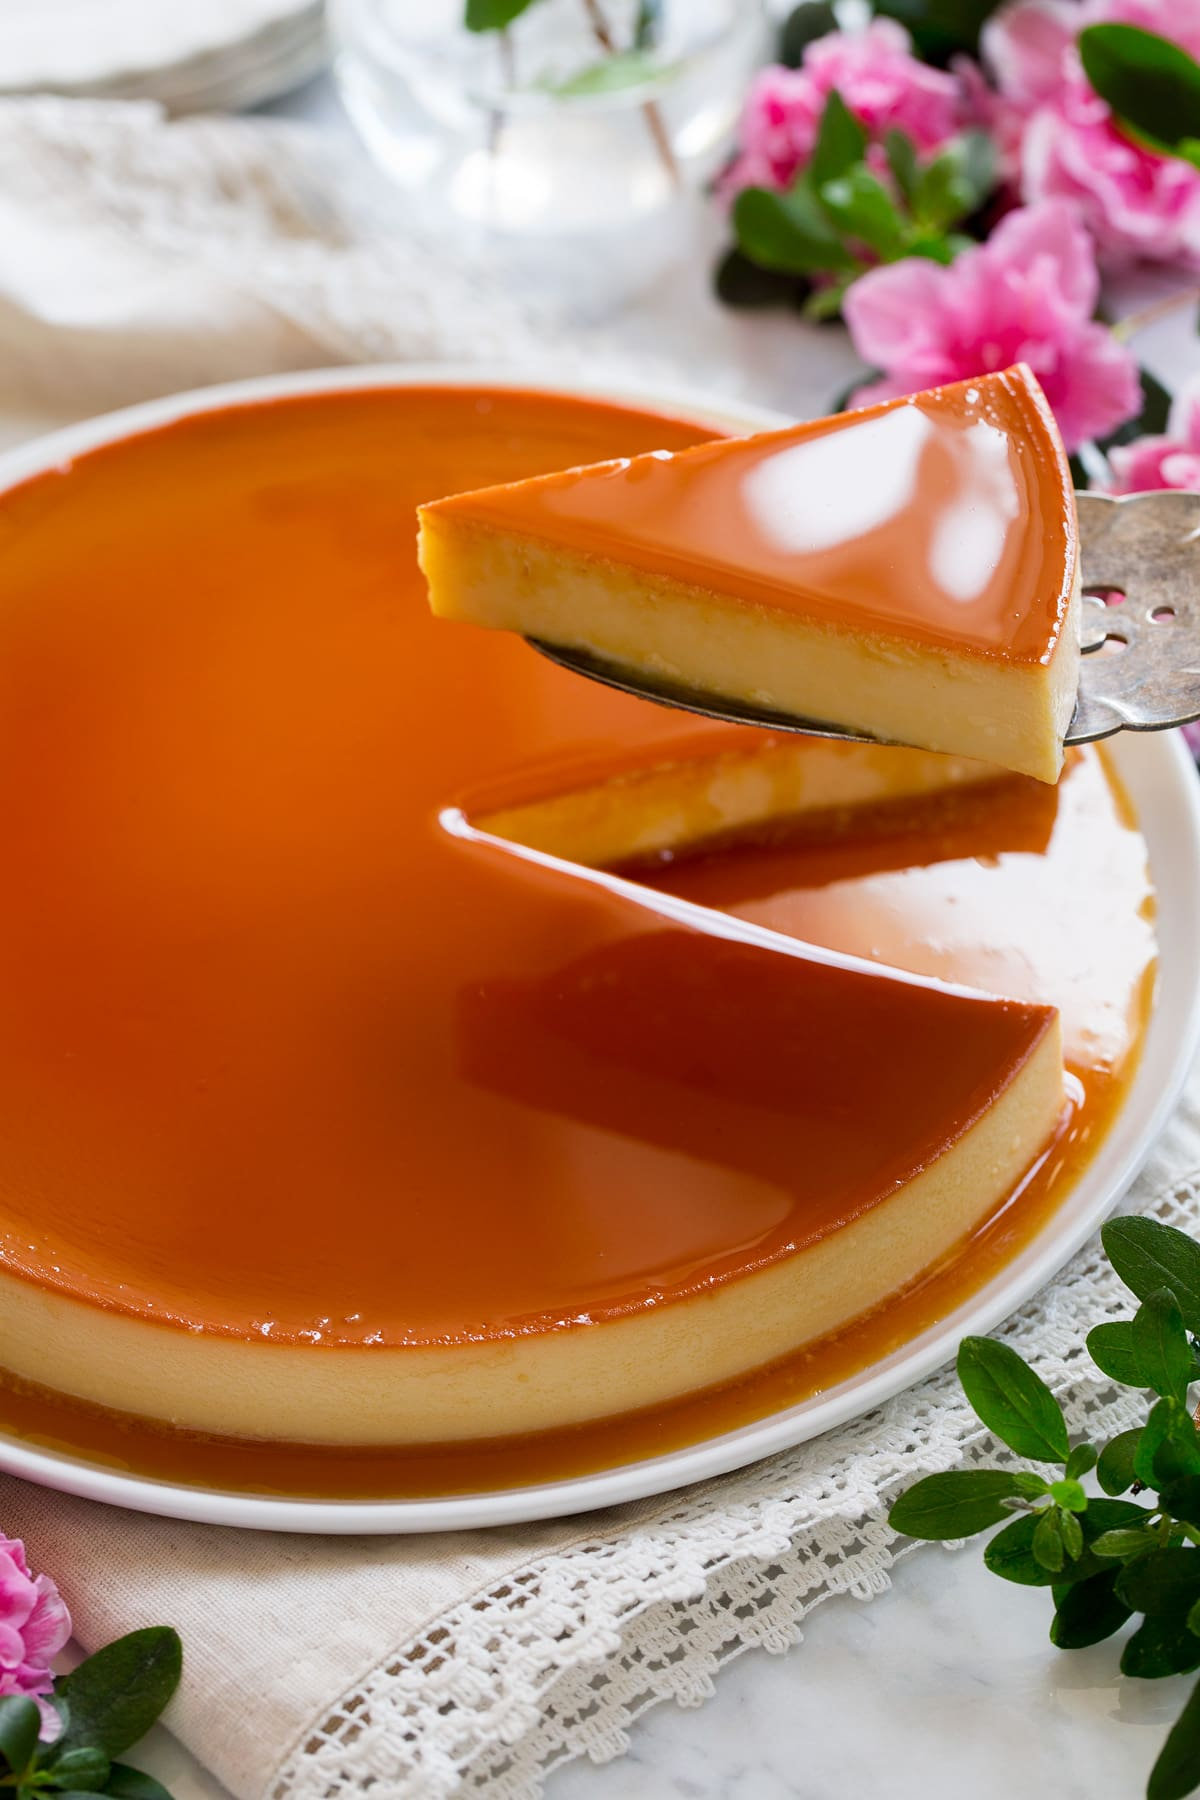 Authentic Mexican desserts: Caramel flan